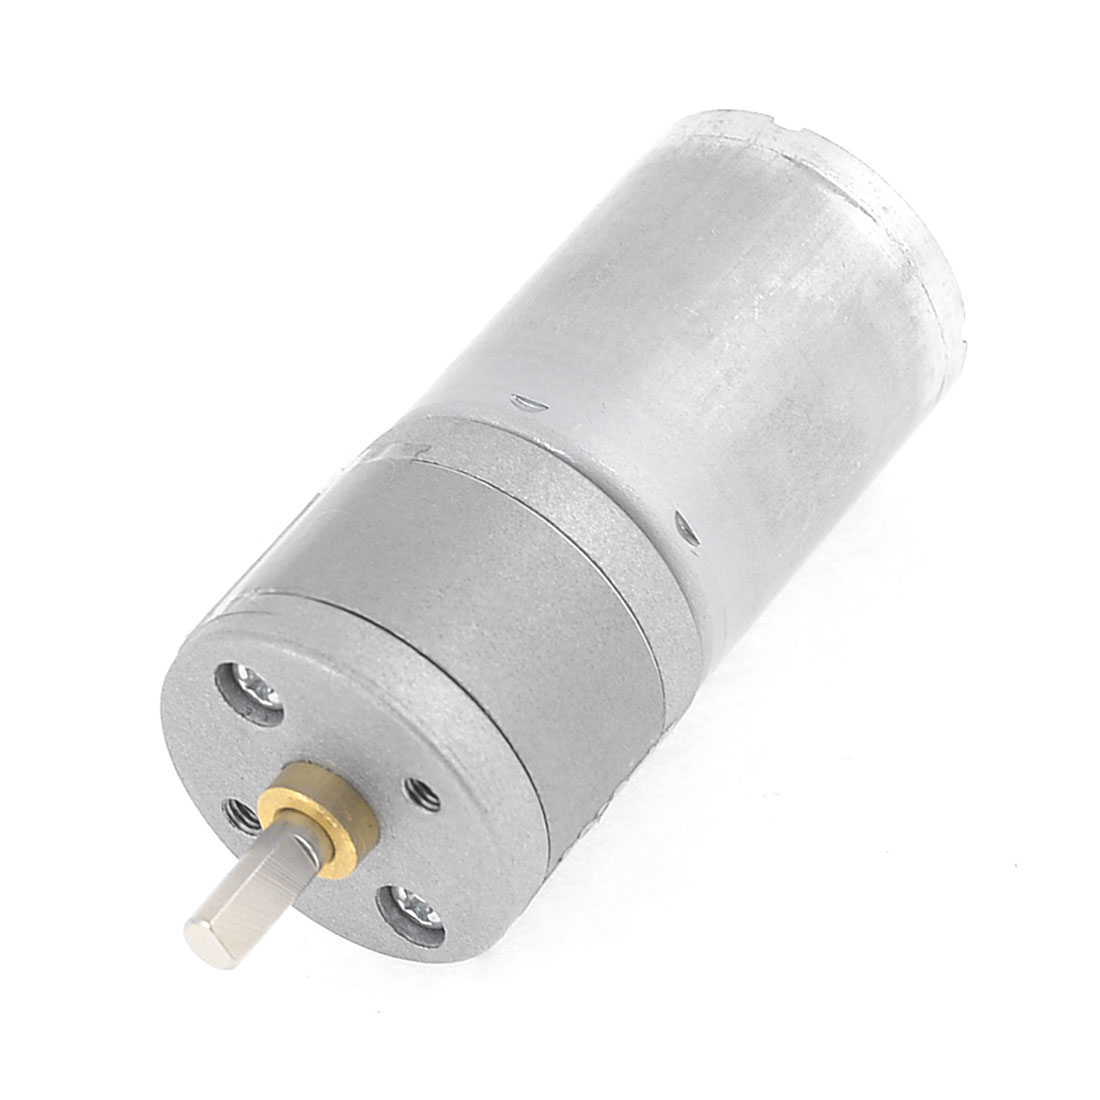 25mm Dia Permanent Magnetic Gear Motor 200 RPM 60mA 12V DC